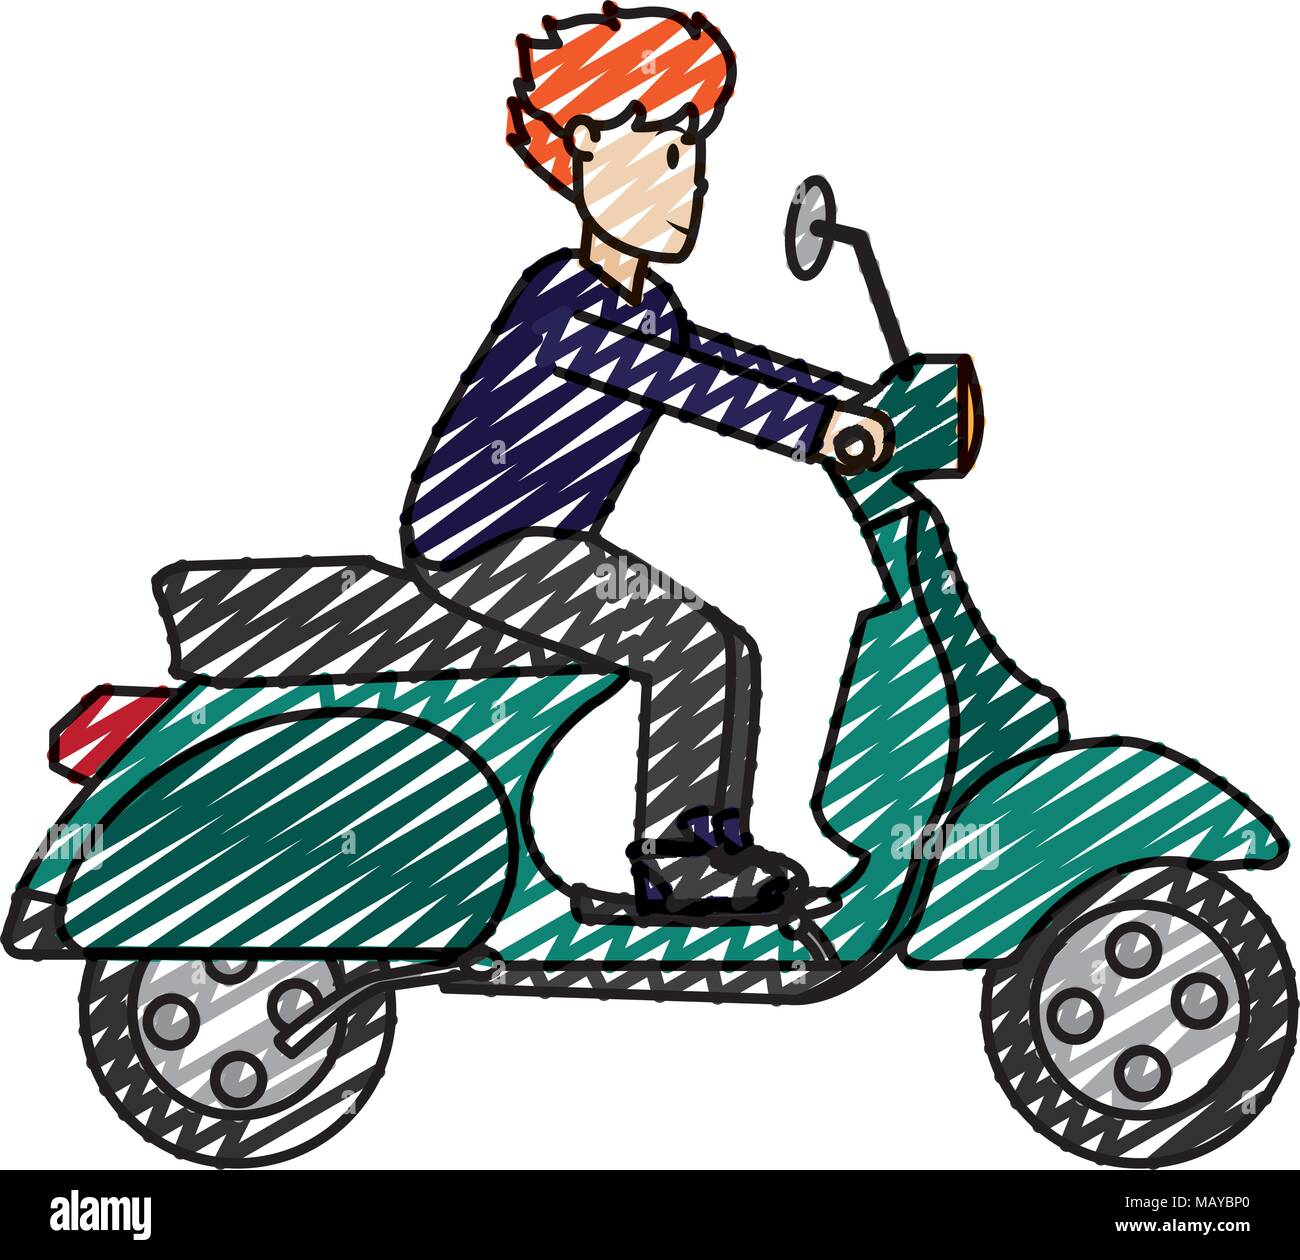 Doodle Man With Haistyle And Clothes Ride Motorcycle Stock Vector